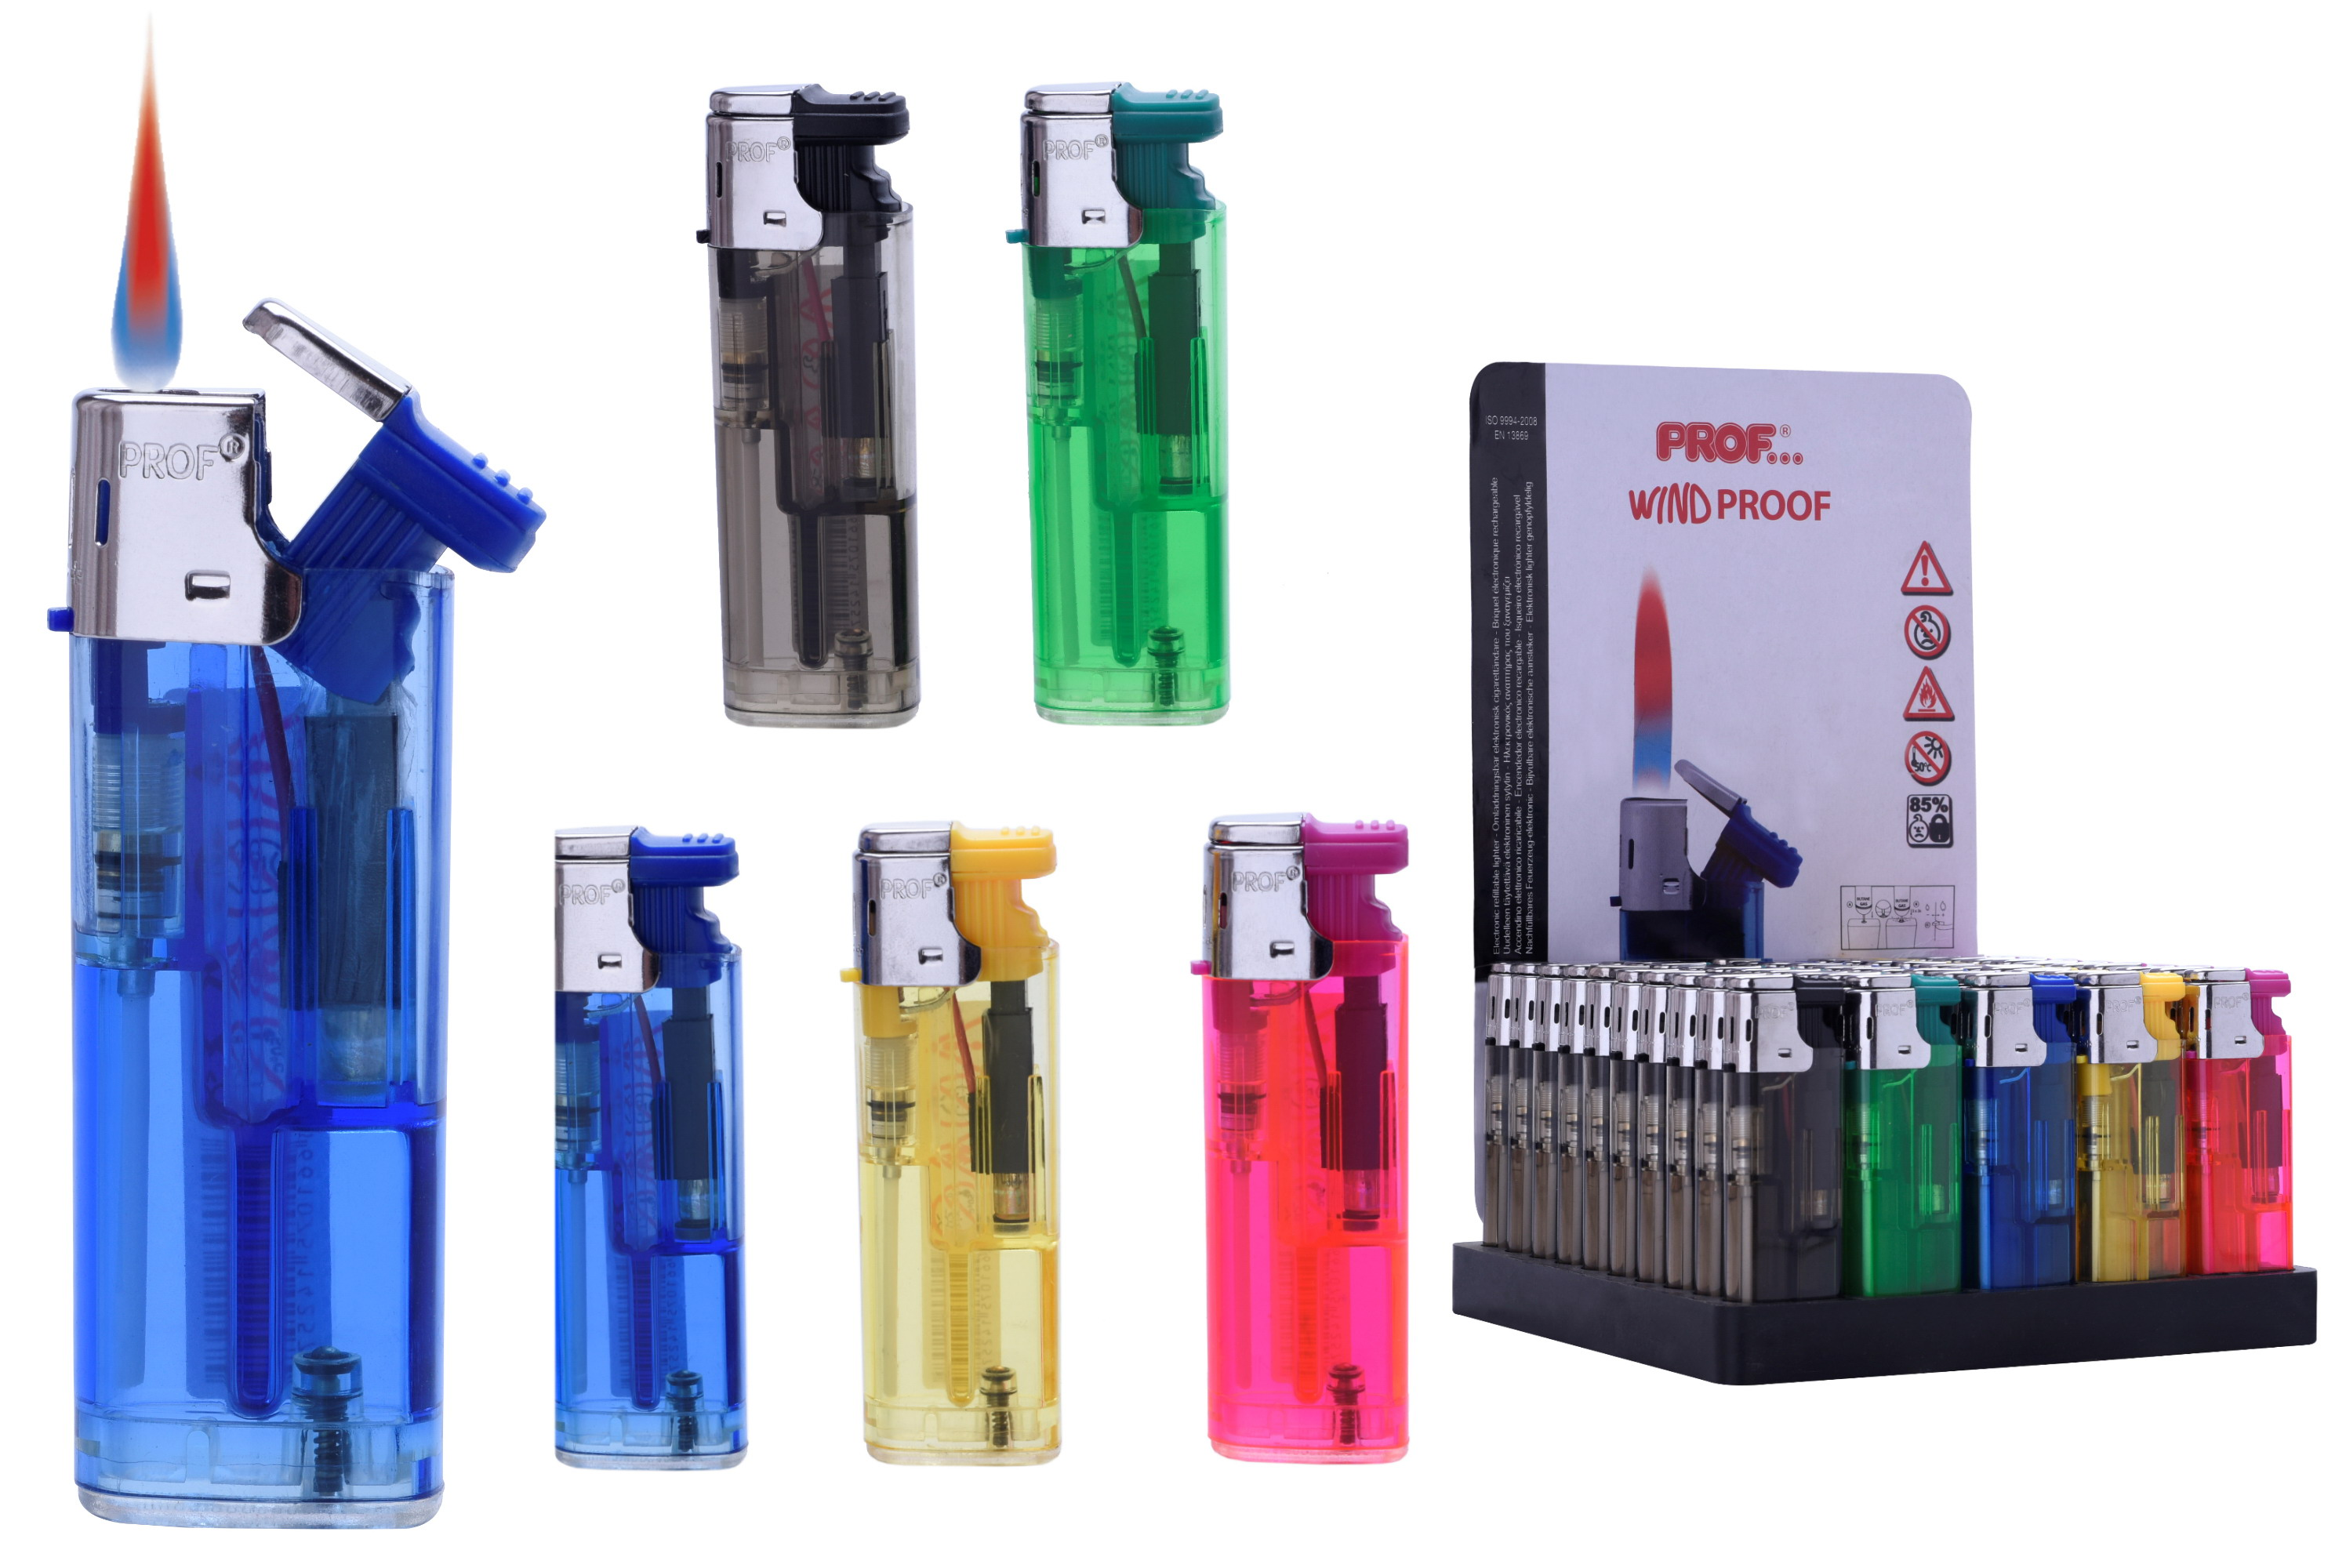 Windproof Disposable Lighter In Display Box